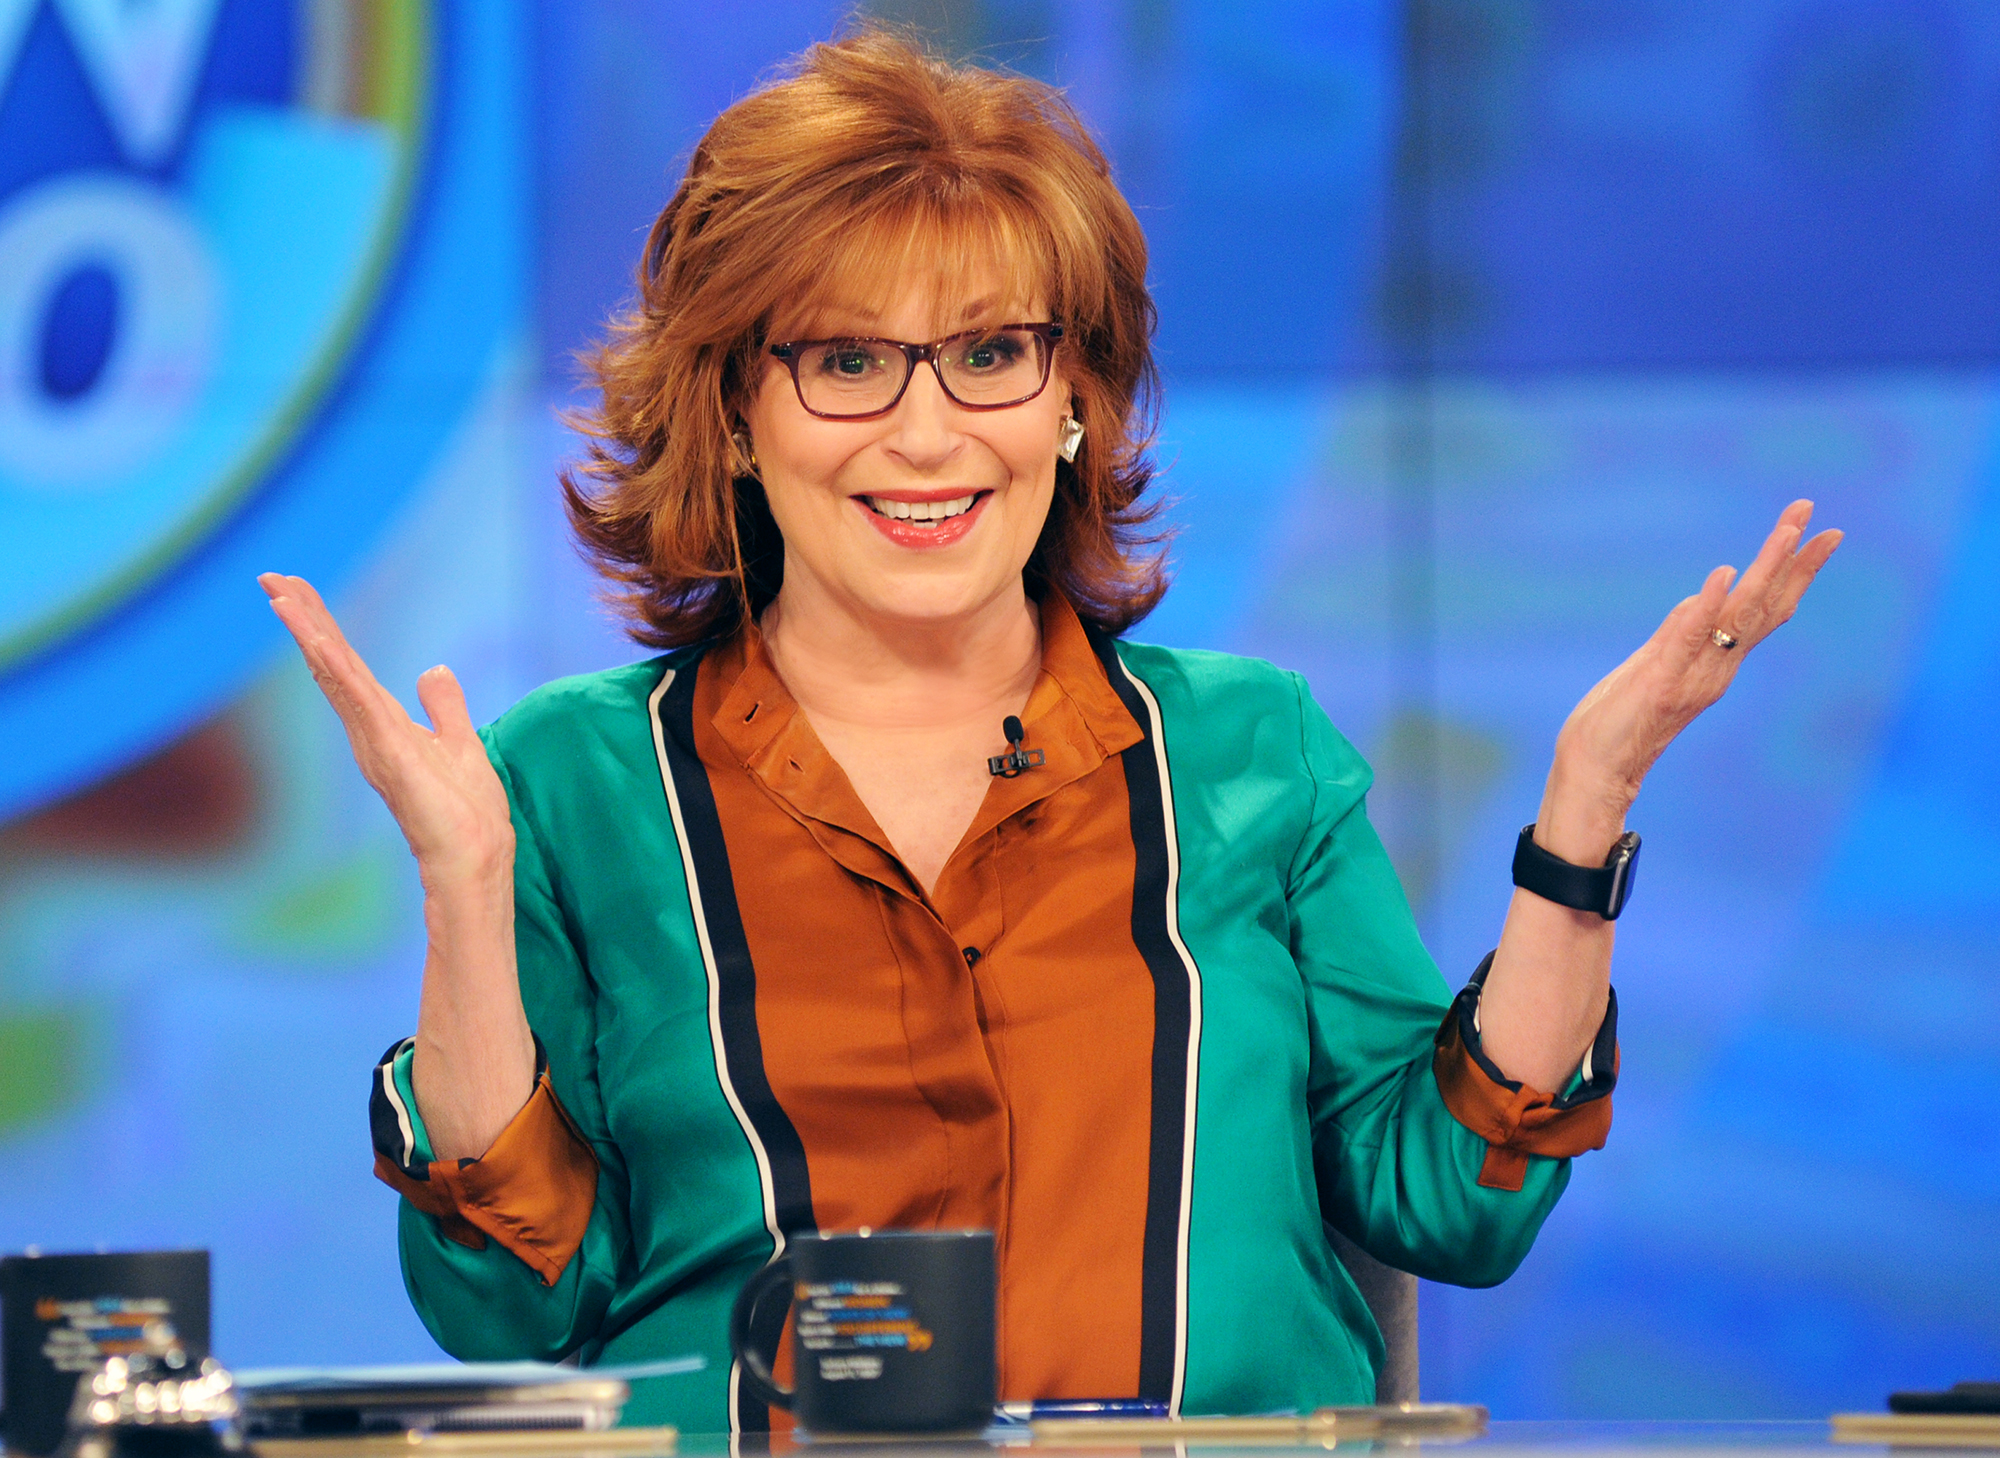 Every 'The View' Cohost Since 1997 Premiere: Joy Behar, Barbara Walters, Whoopi Goldberg and More - The comedian is the longest-running View host, appearing at the panel from 1997 to 2013 before rejoining in 2015.